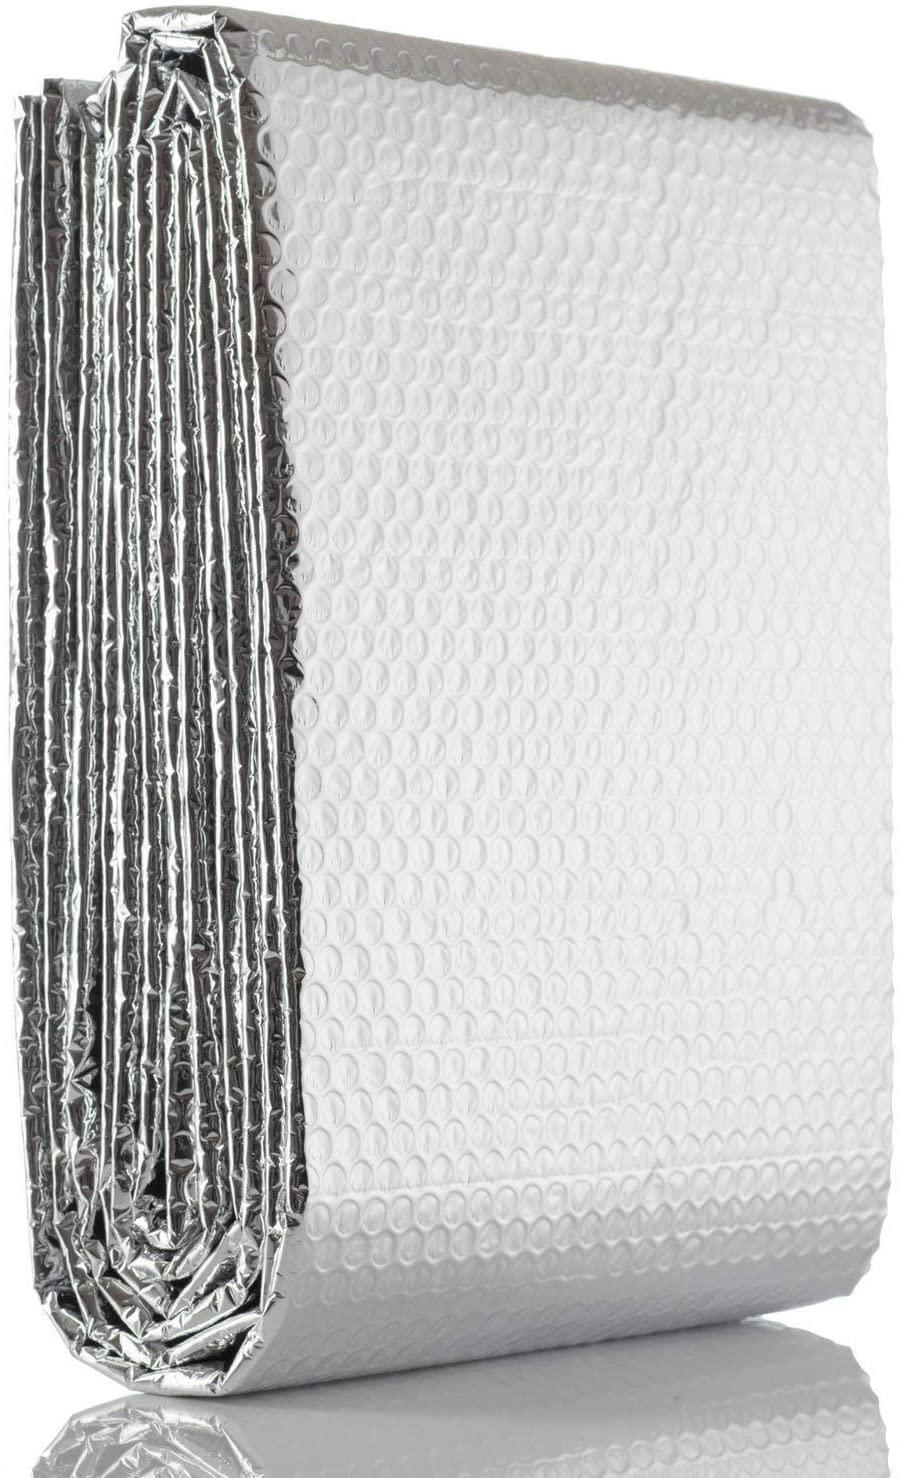 "<h3>Radiator Insulation Foil</h3><br>Okay, so this one is cheating a little but if you're going to turn on the central heating this <a href=""https://www.refinery29.com/en-gb/rugs-lounge-interiors"" rel=""nofollow noopener"" target=""_blank"" data-ylk=""slk:autumn"" class=""link rapid-noclick-resp"">autumn</a>, make sure that you're getting the most bang for your buck. To avoid losing unnecessary heat (and watching your bills skyrocket), the easiest addition you can make to your home is reflective foil. Yep, just like tin foil, adding a padded self-adhesive section of foil behind your radiators is a simple way to insulate and minimise heat loss as we head into the colder months.<br><br><strong>Superfoil</strong> Radiator Insulation Foil, $, available at <a href=""https://www.amazon.co.uk/SuperFOIL-RadPack-Reflective-Reflector-Money-Insulates/dp/B00GUDVUXW"" rel=""nofollow noopener"" target=""_blank"" data-ylk=""slk:Amazon"" class=""link rapid-noclick-resp"">Amazon</a>"